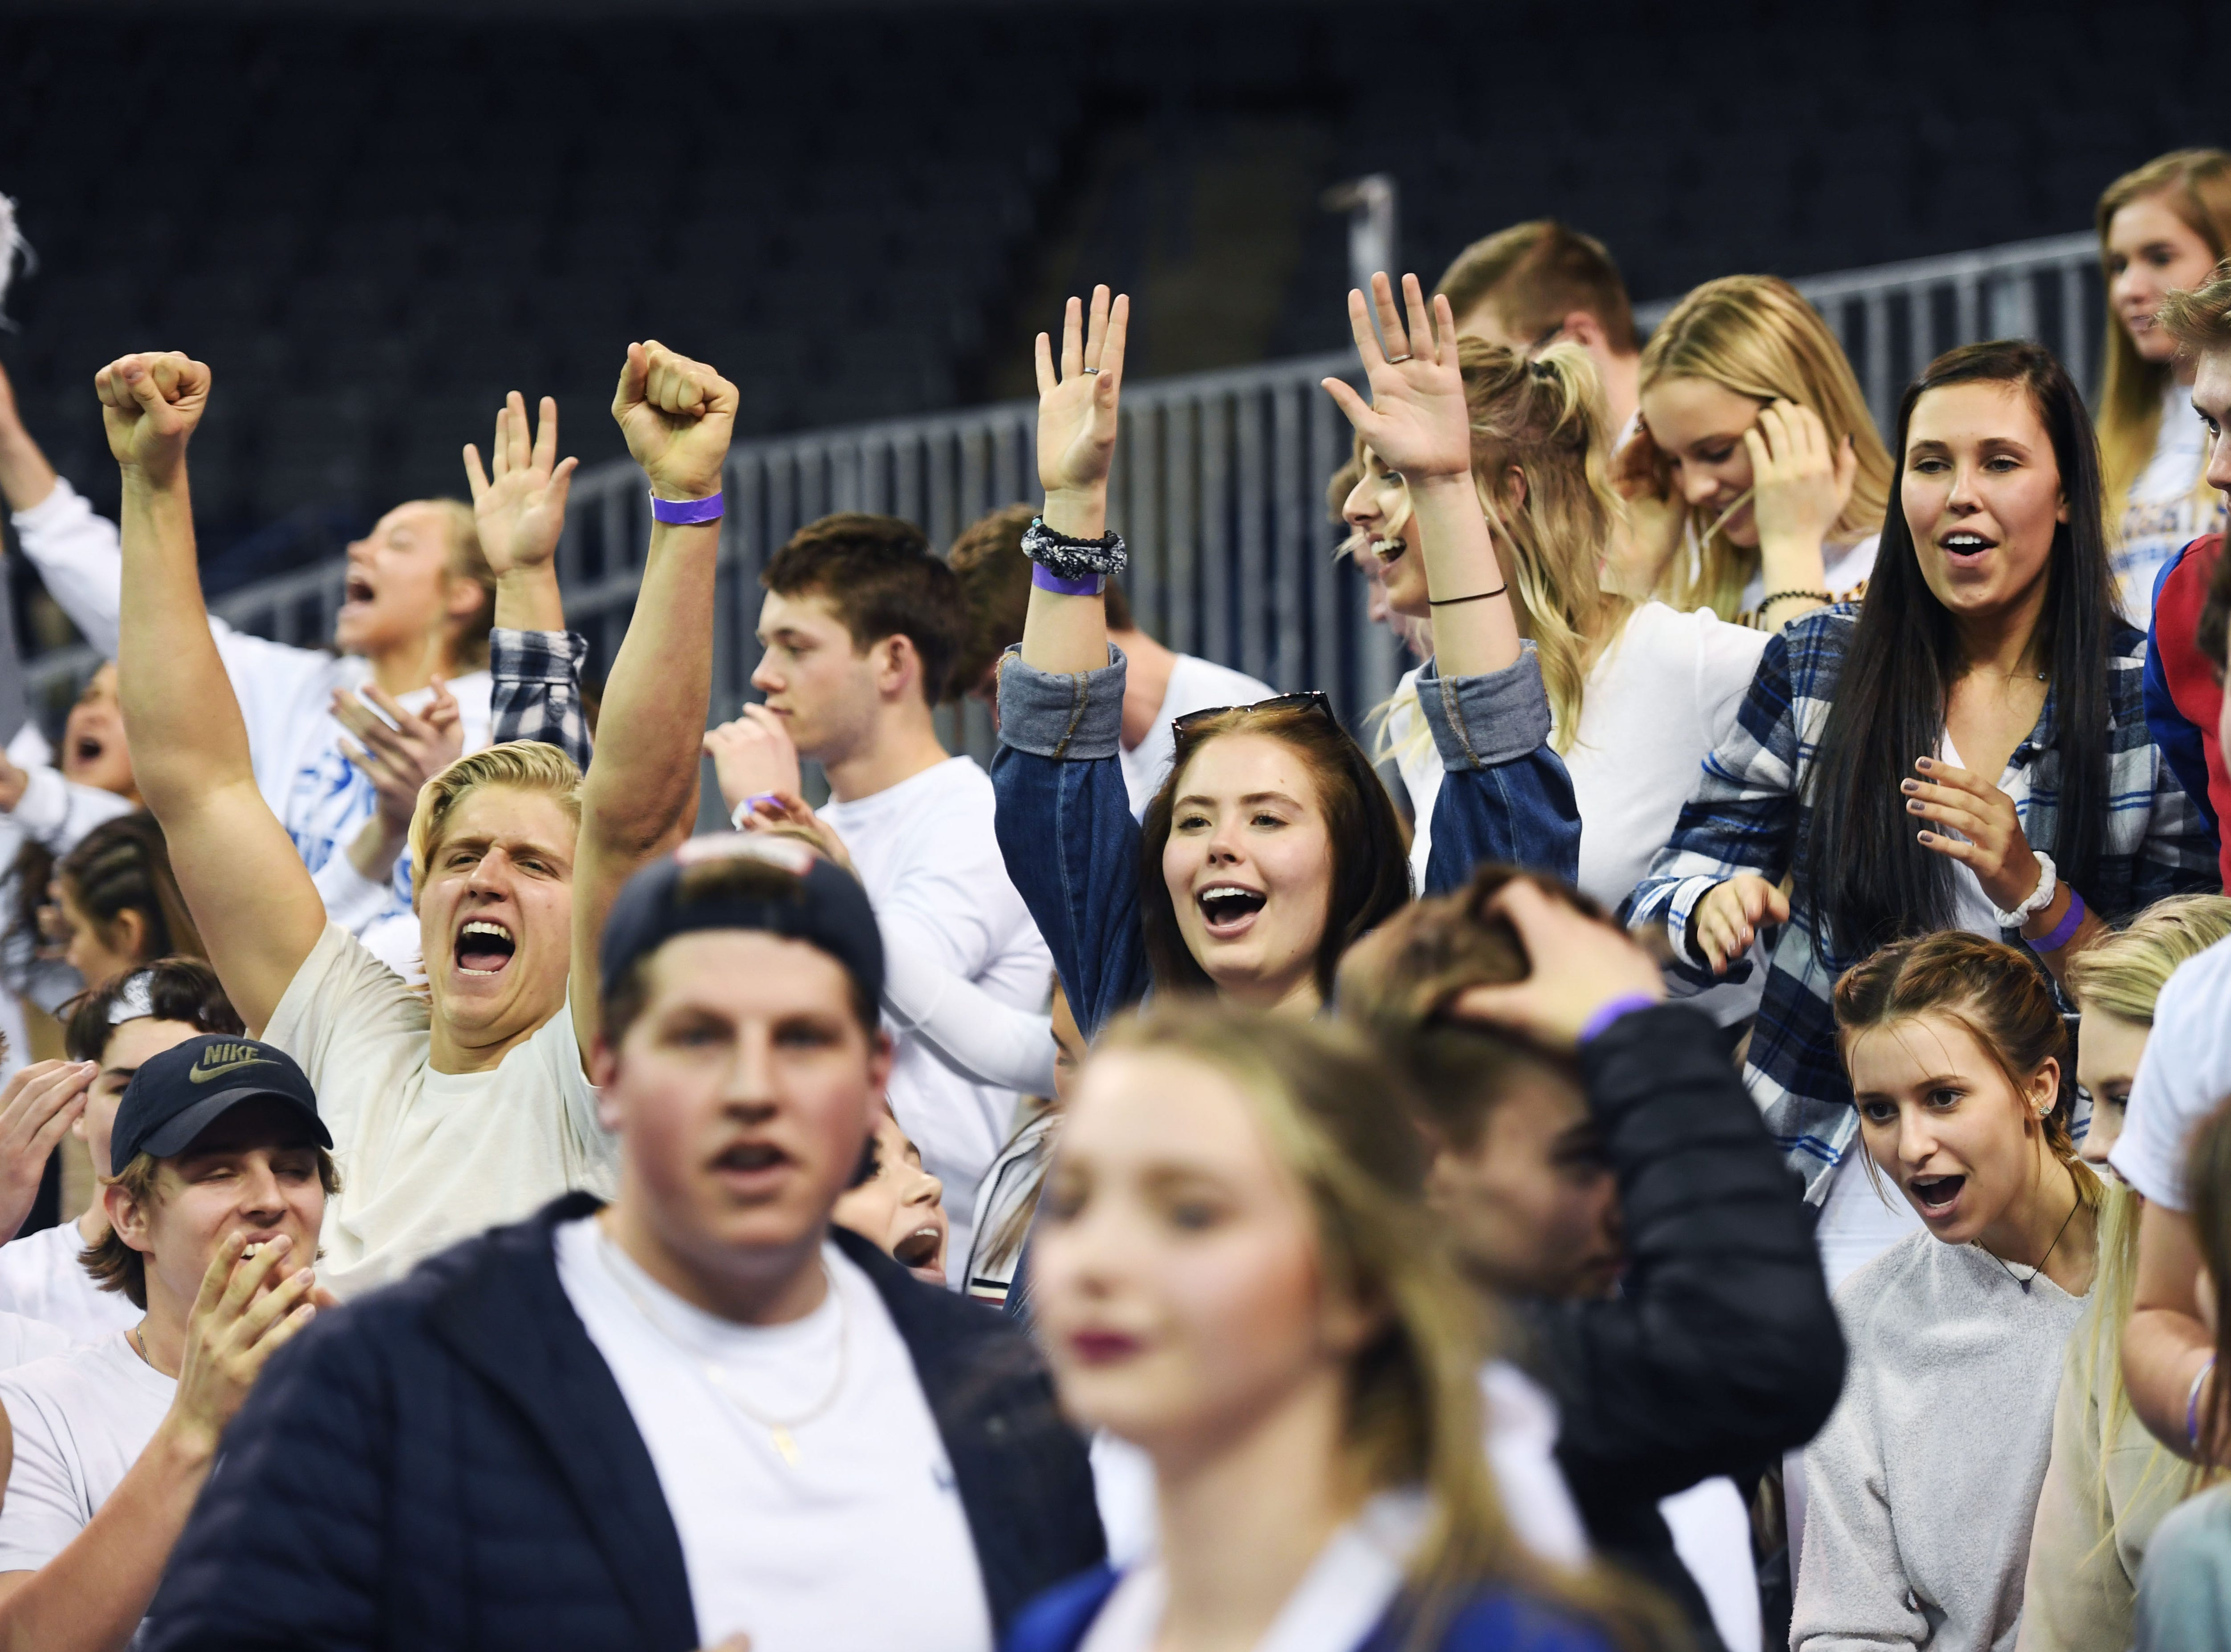 O'Gorman's student section celebrates after their win against Roosevelt in the Class AA quarterfinals Thursday, March 14, in Rapid City.